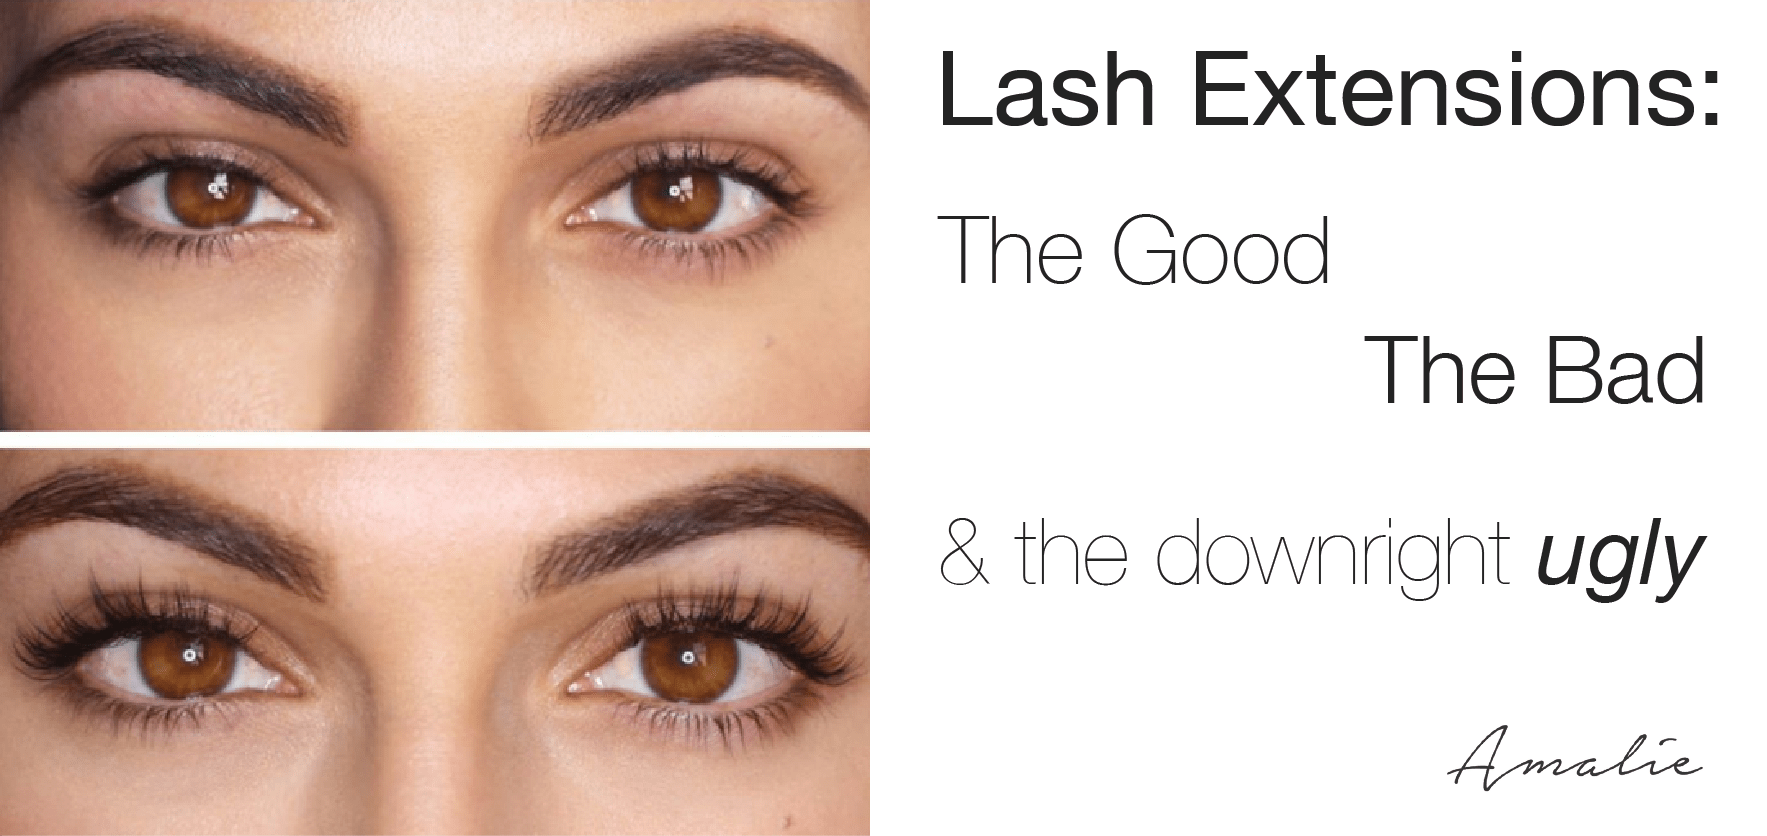 a1ddc84e8d1 Eyelash Extension Pros & Cons: The Good, The Bad and the Ugly ...